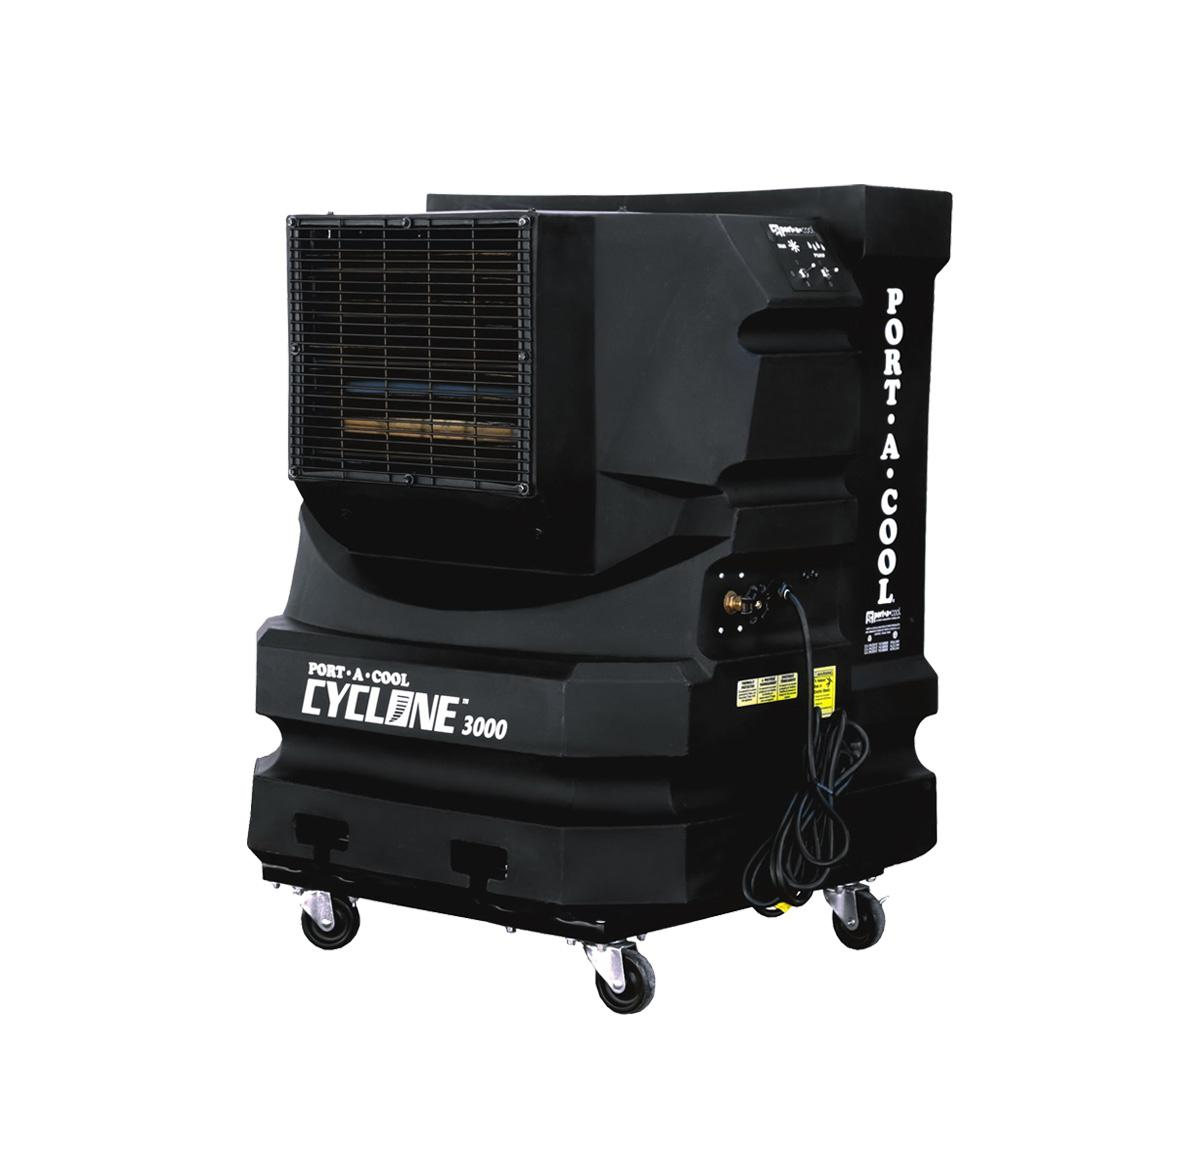 Port-a-Cool Cyclone 3000 Mobile Cooler